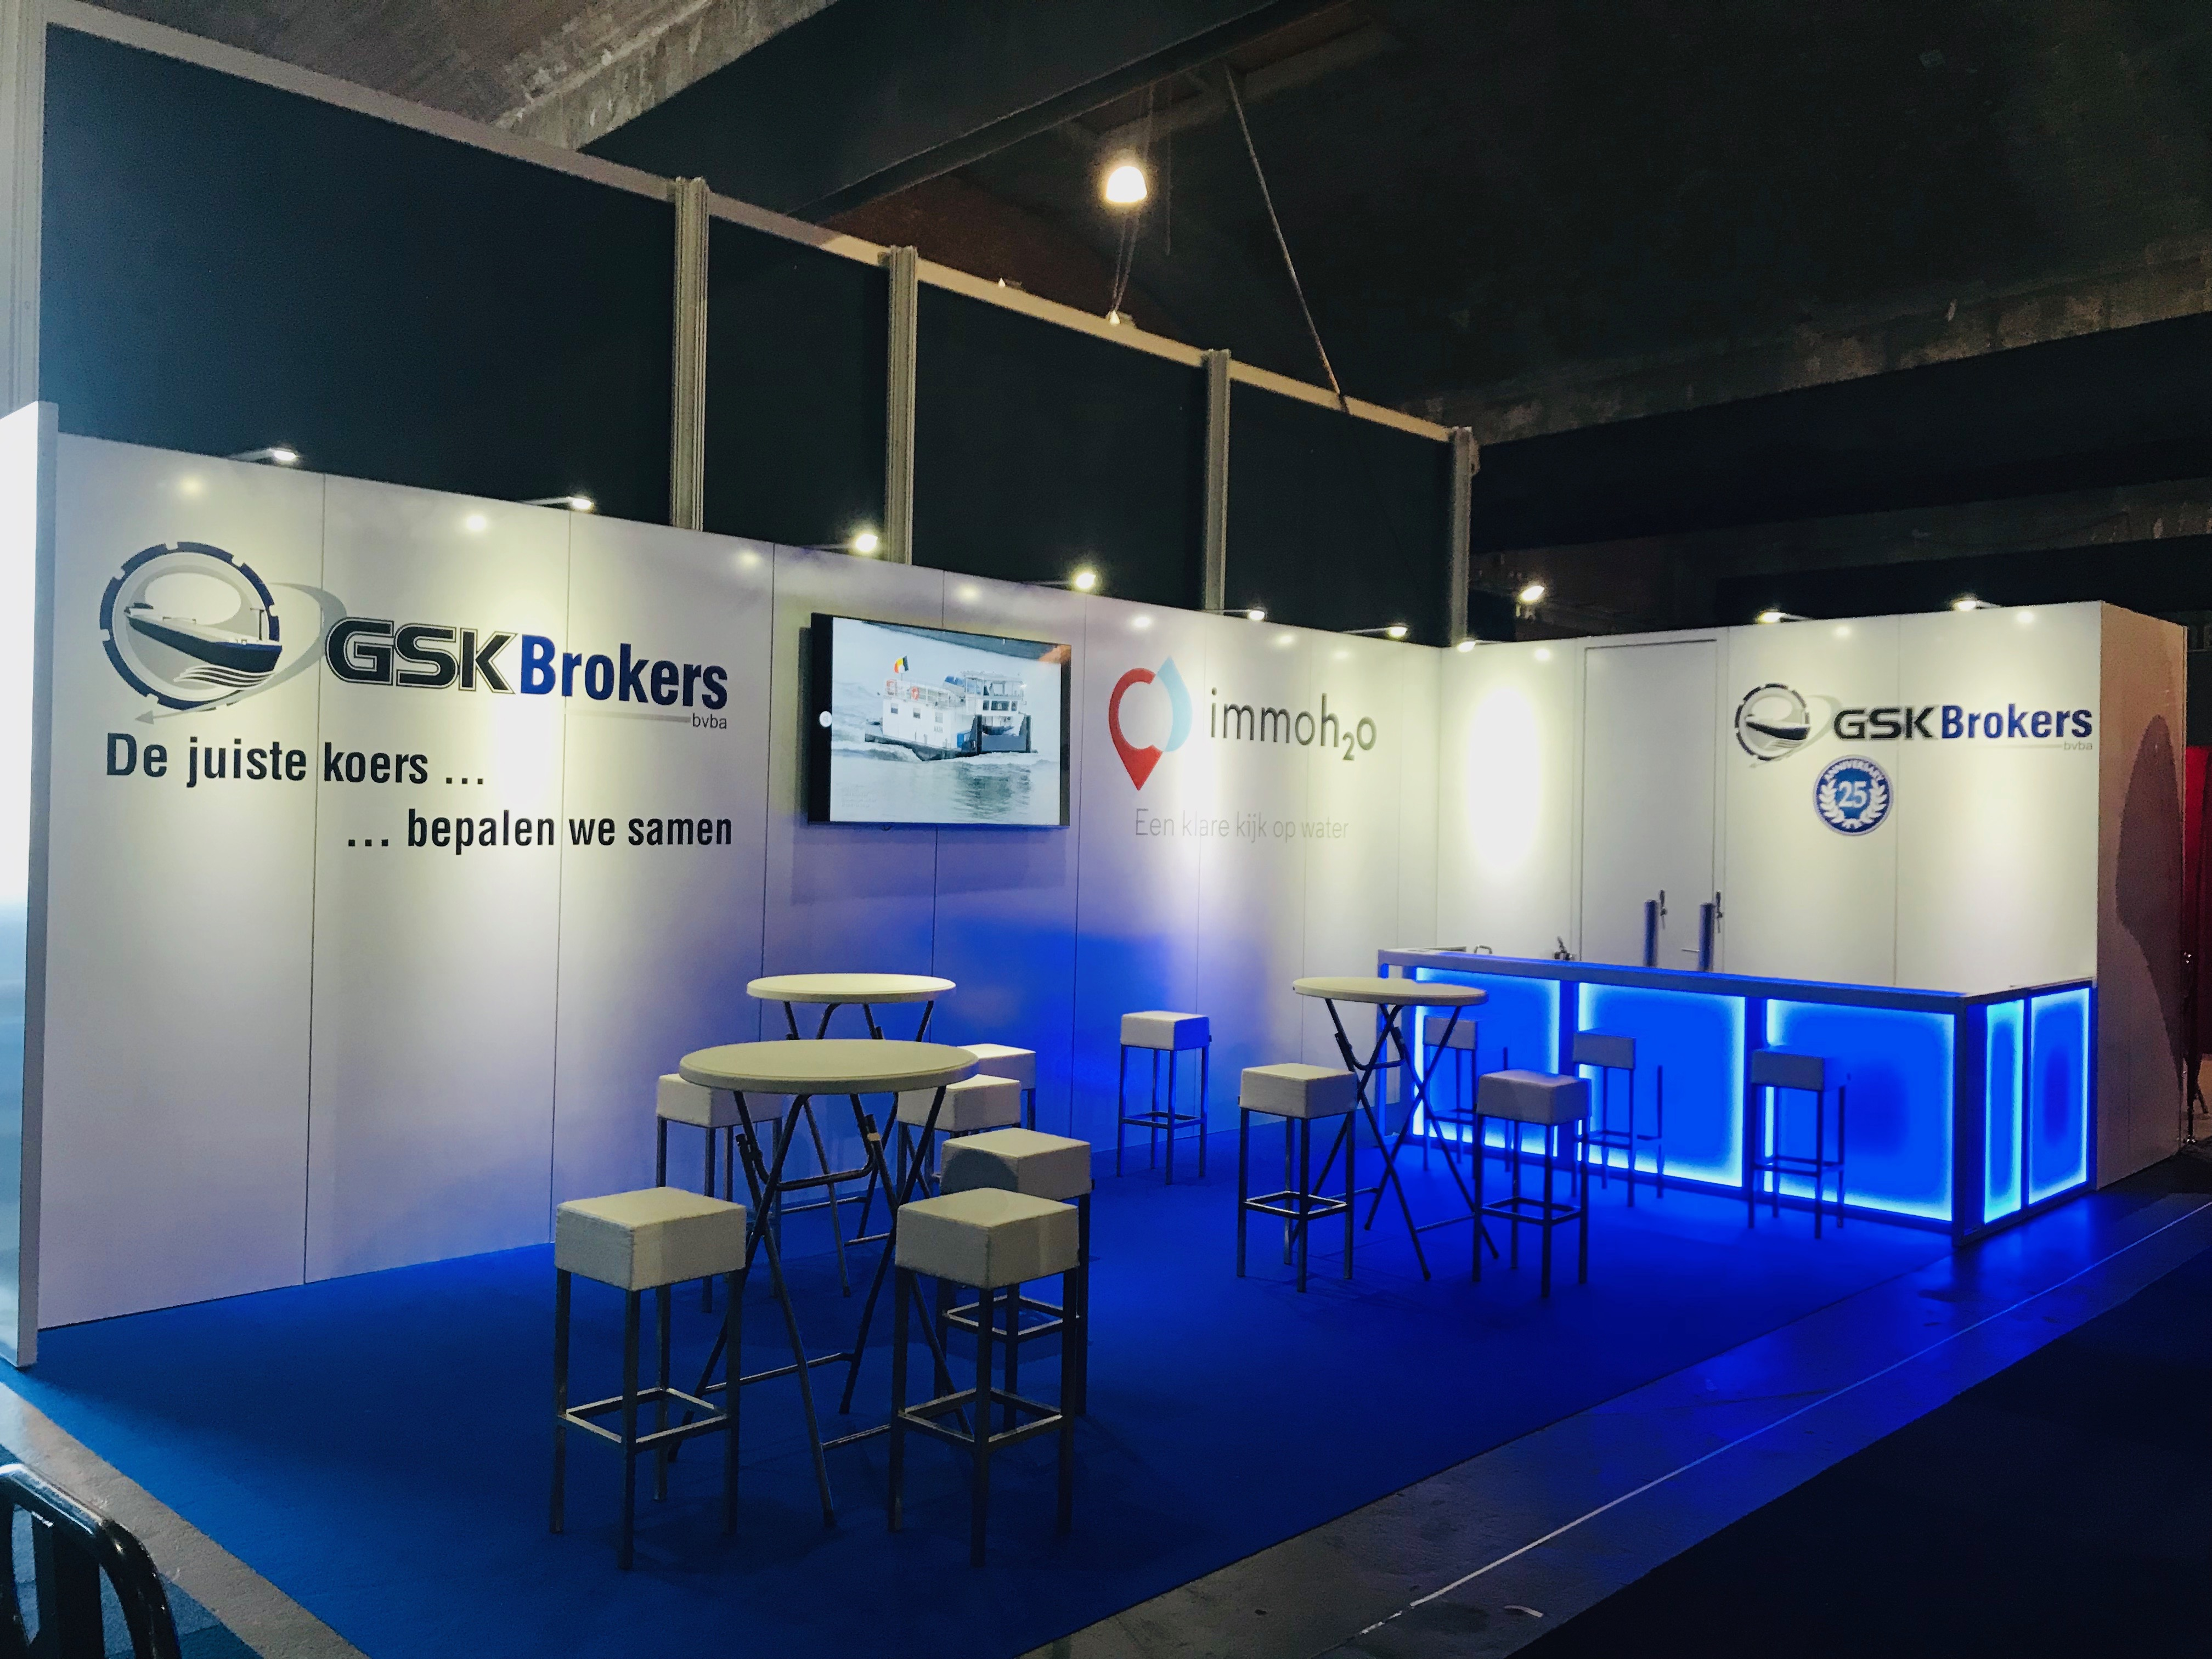 GSK Brokers